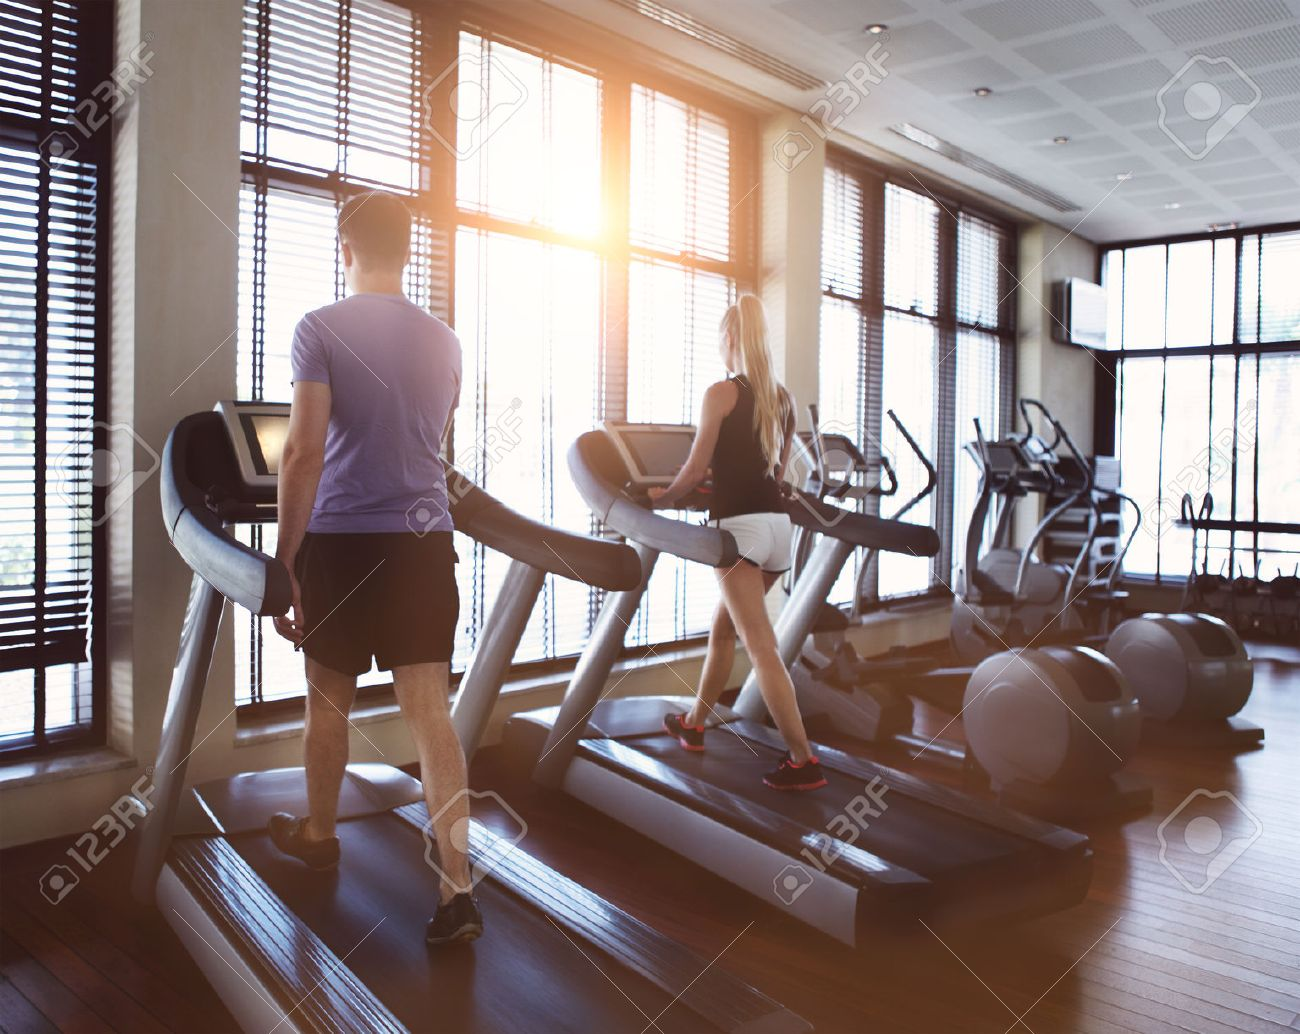 Healthy man and woman running on a treadmill in a gym. Sport and health concept - 40375927